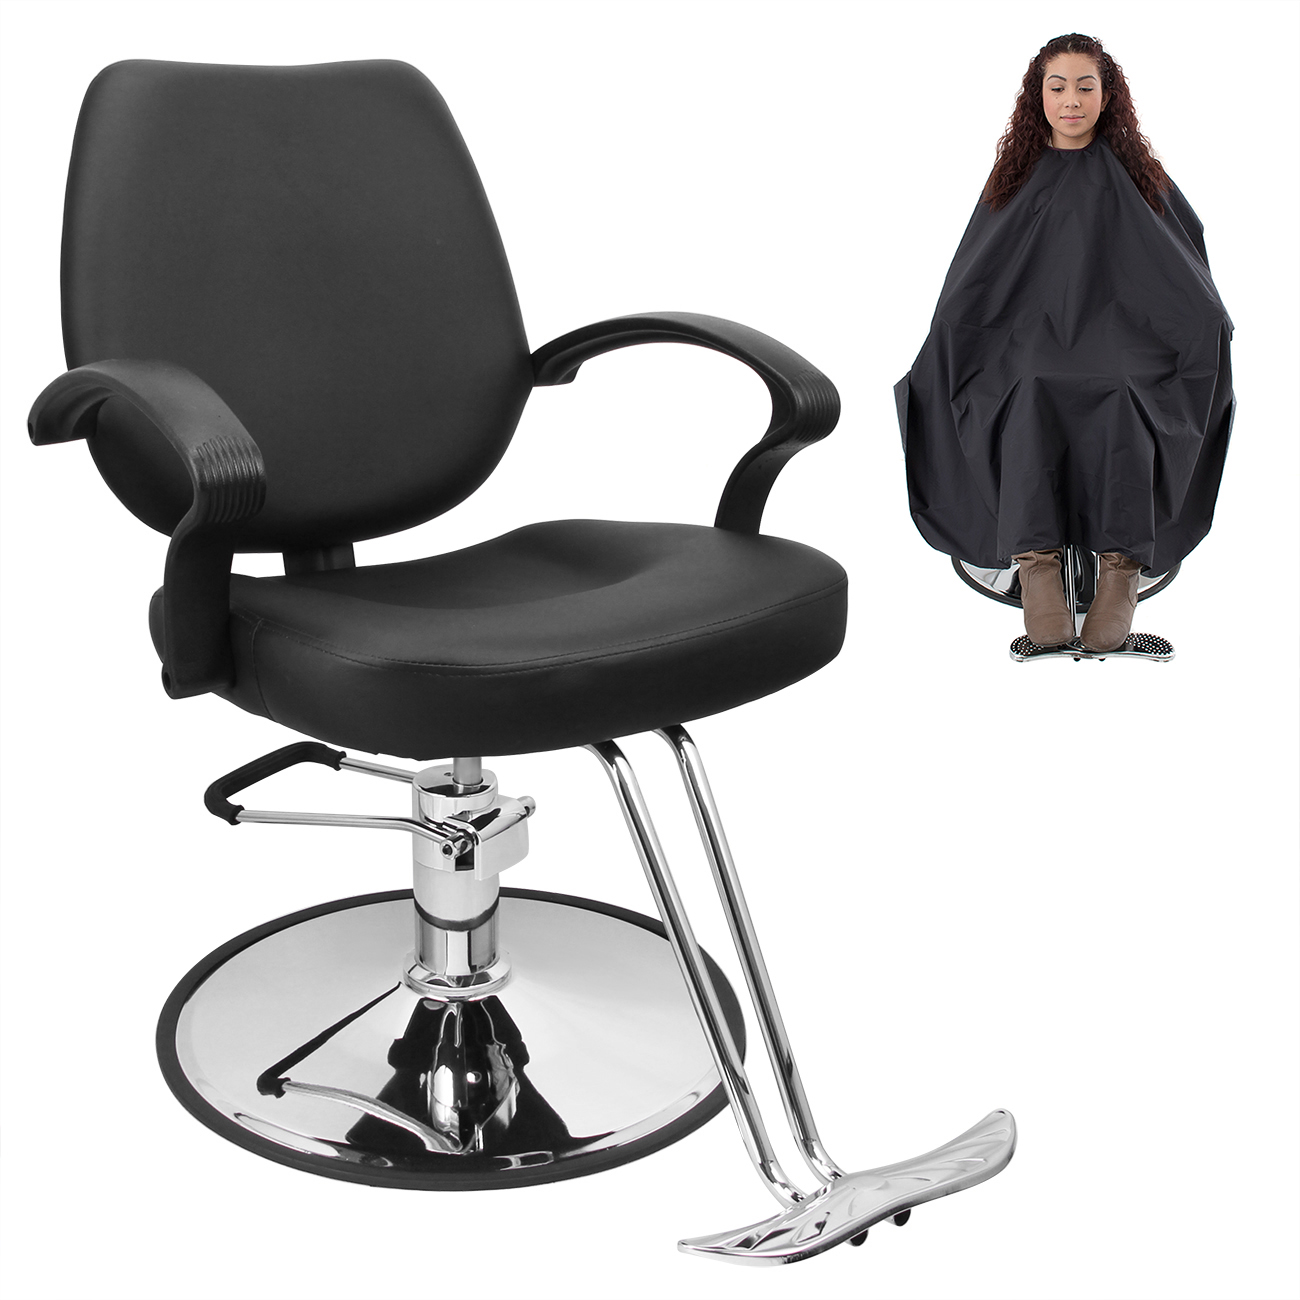 electric hydraulic hair styling chairs wheelchair fencing classic barber chair salon beauty spa